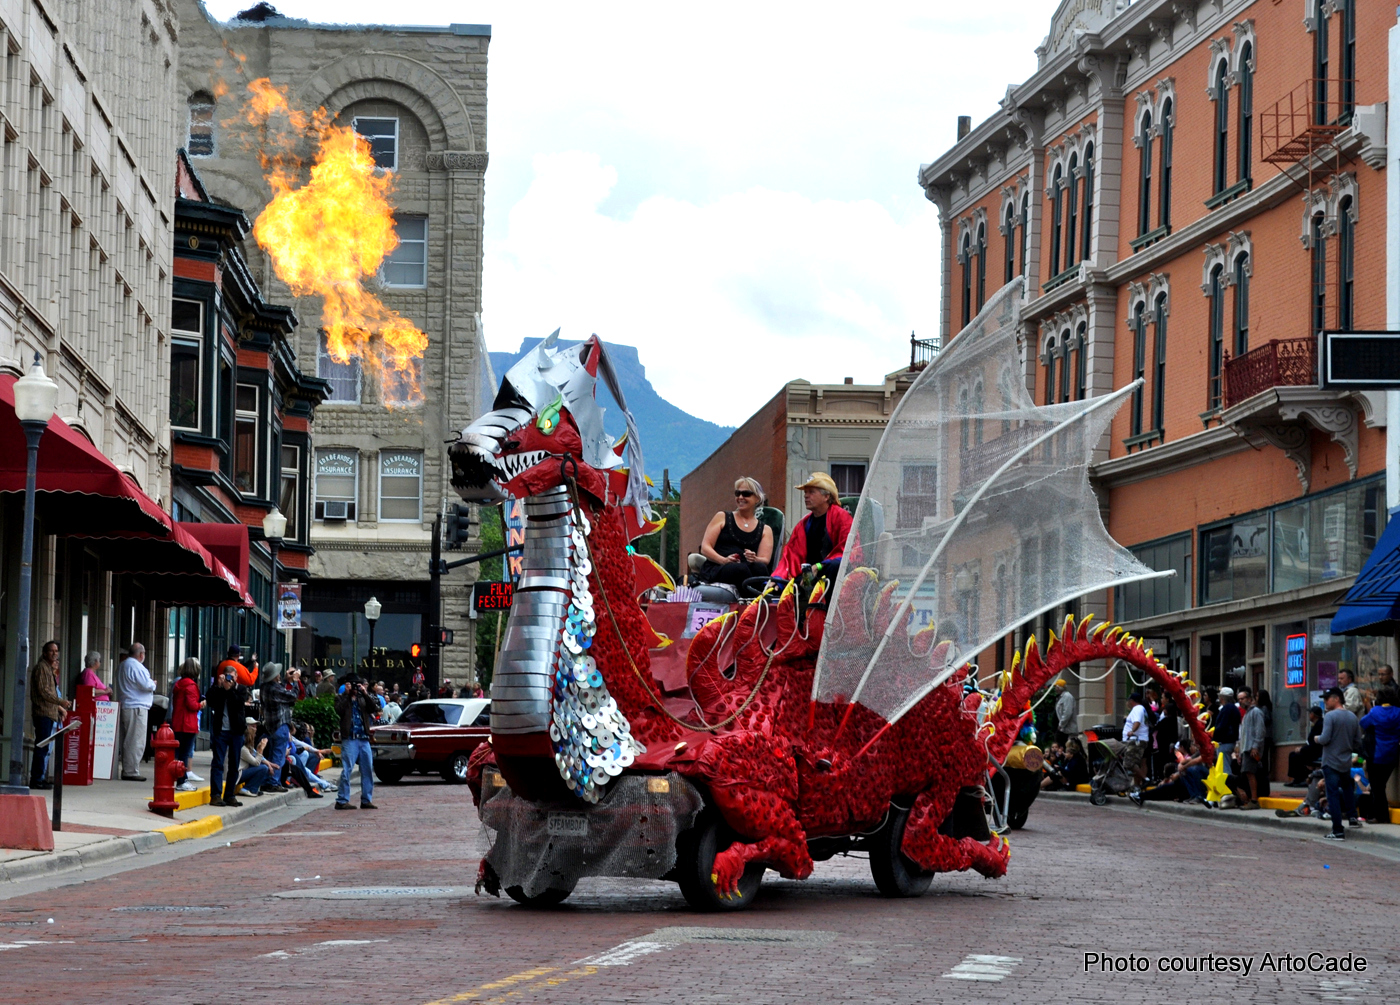 ArtoCade in Trinidad, Colorado. fire breathing dragon car